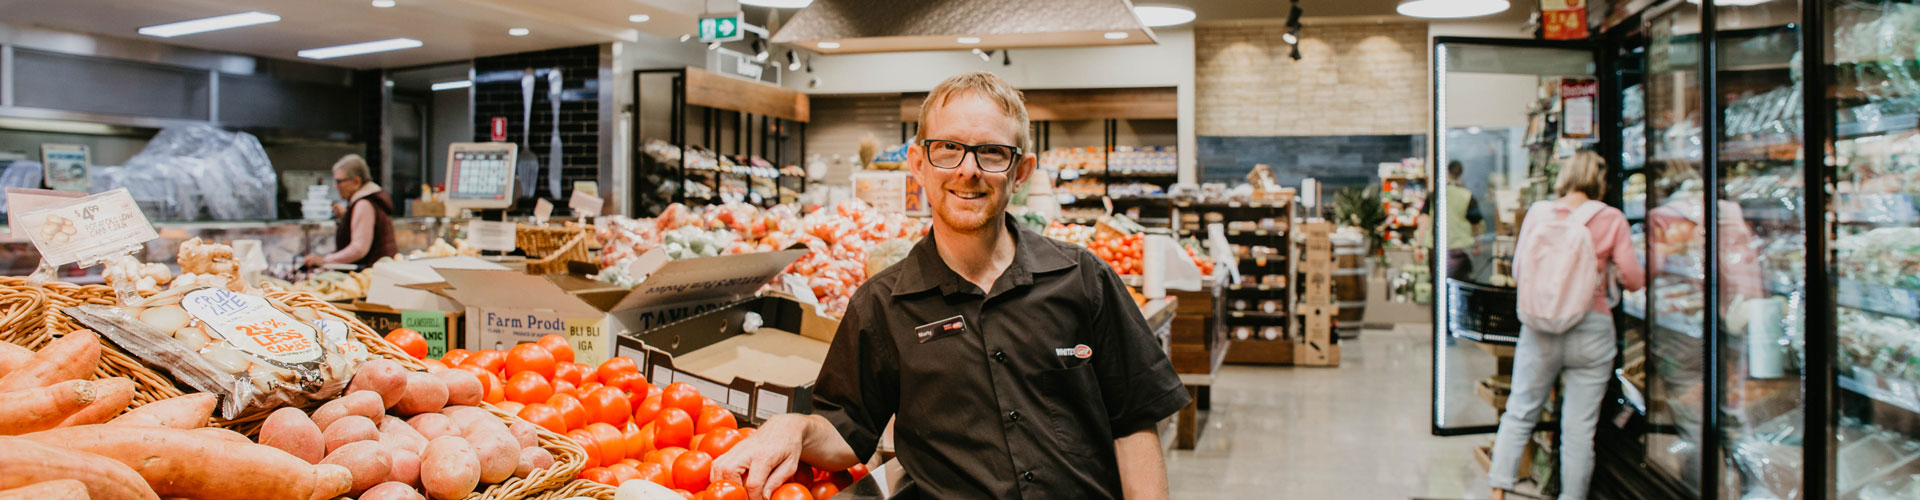 Man with disability in grocery store